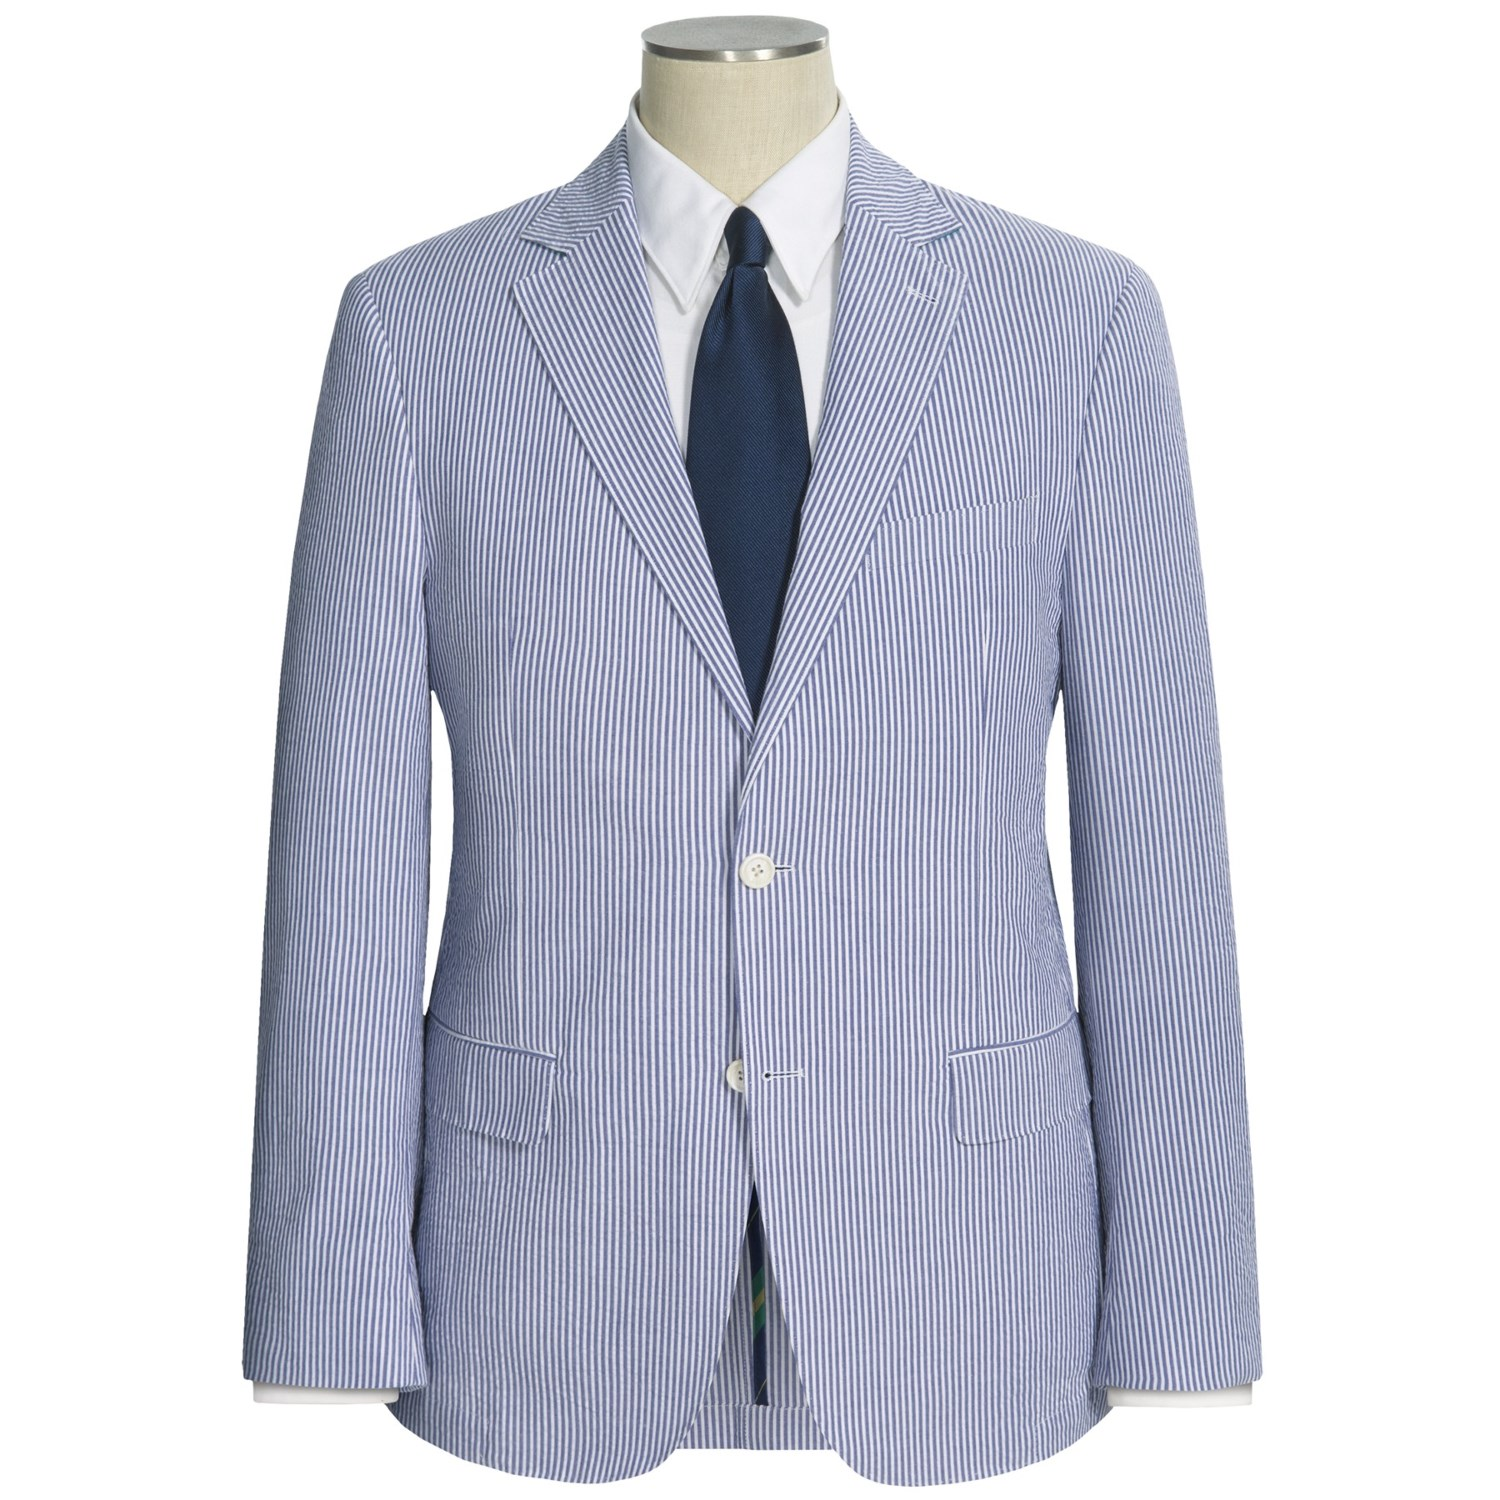 Shop for men's seersucker suits online at downiloadojg.gq Browse the latest seersucker styles for men from Jos. A Bank. FREE shipping on orders over $